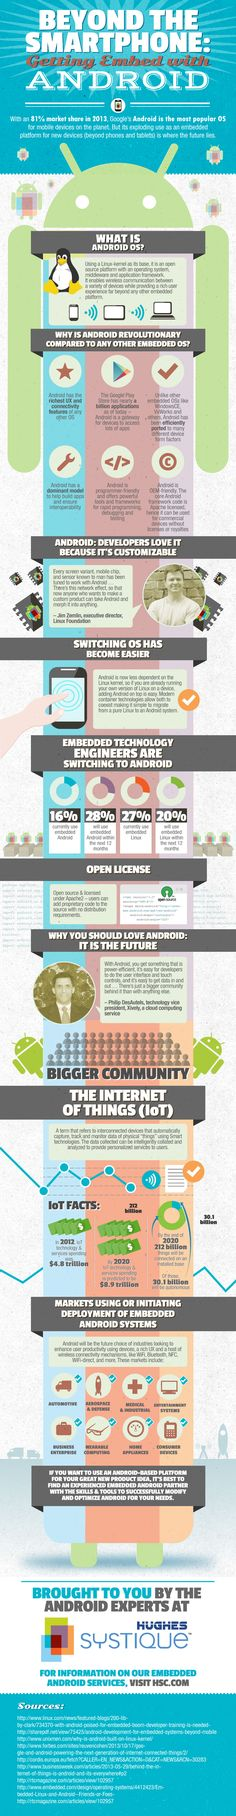 Android OS And The Future Of Embedded Systems